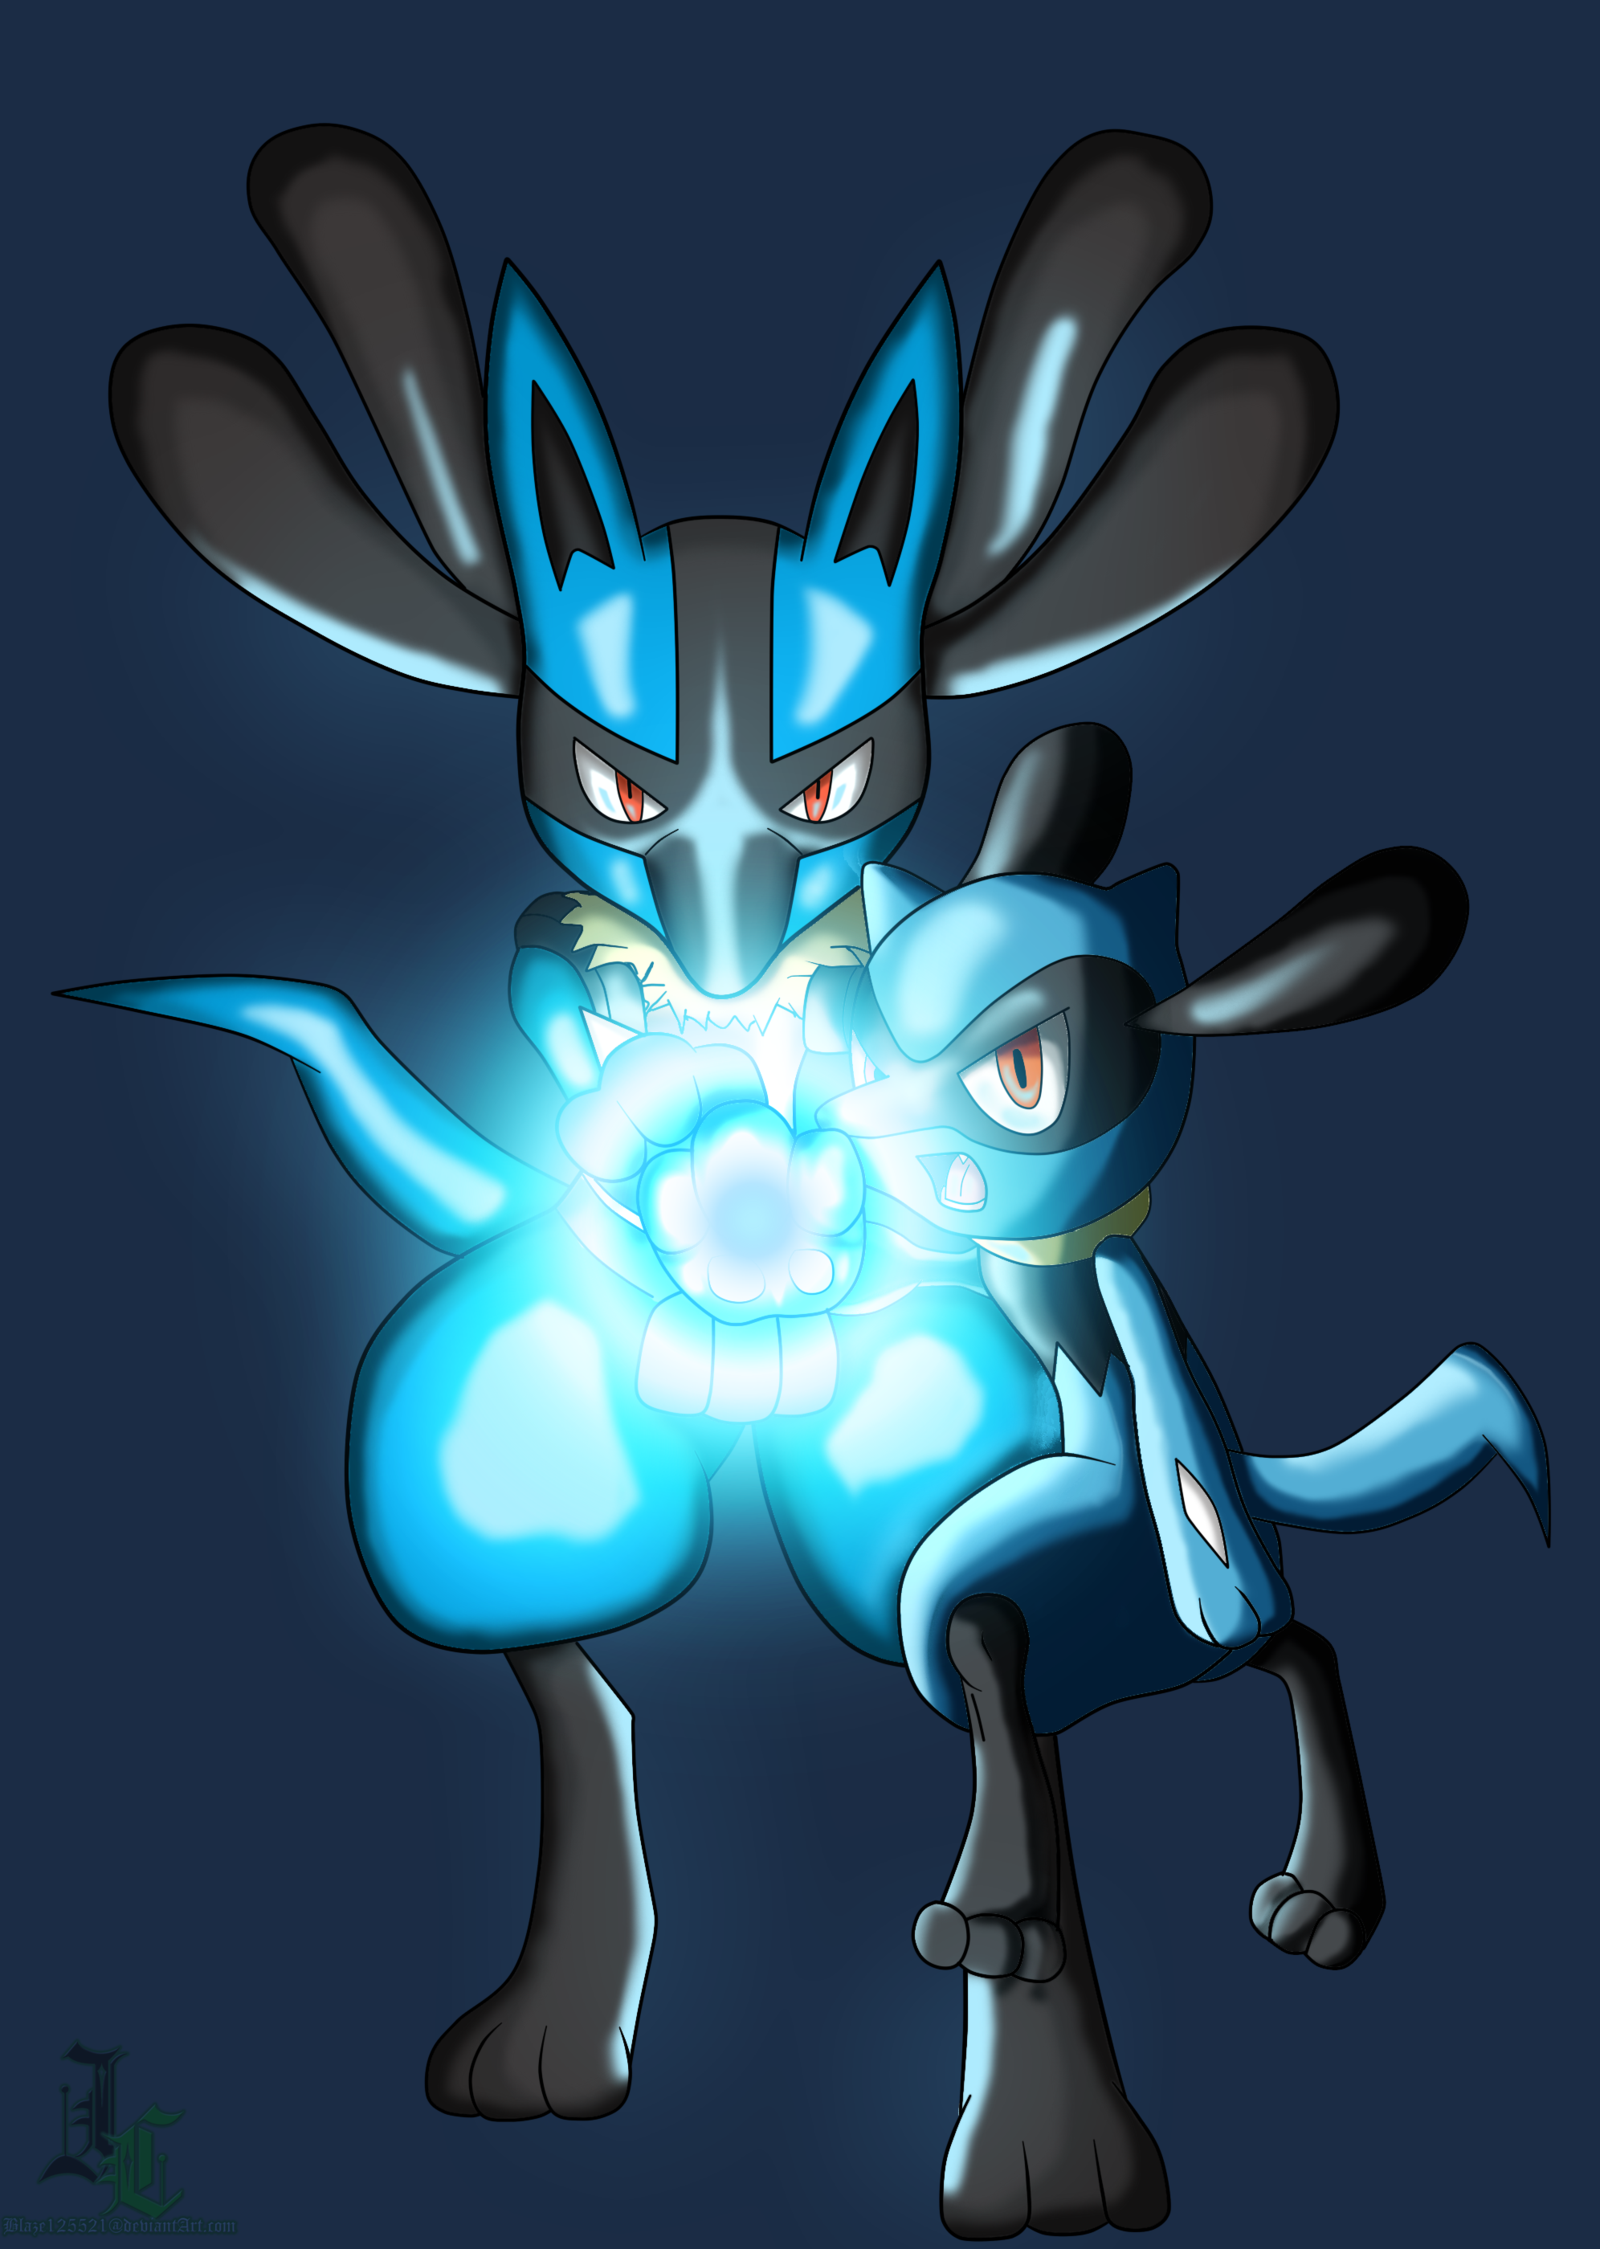 Pin By Lucario On Lucario Pinterest Pokémon Cool Pokemon And Auras